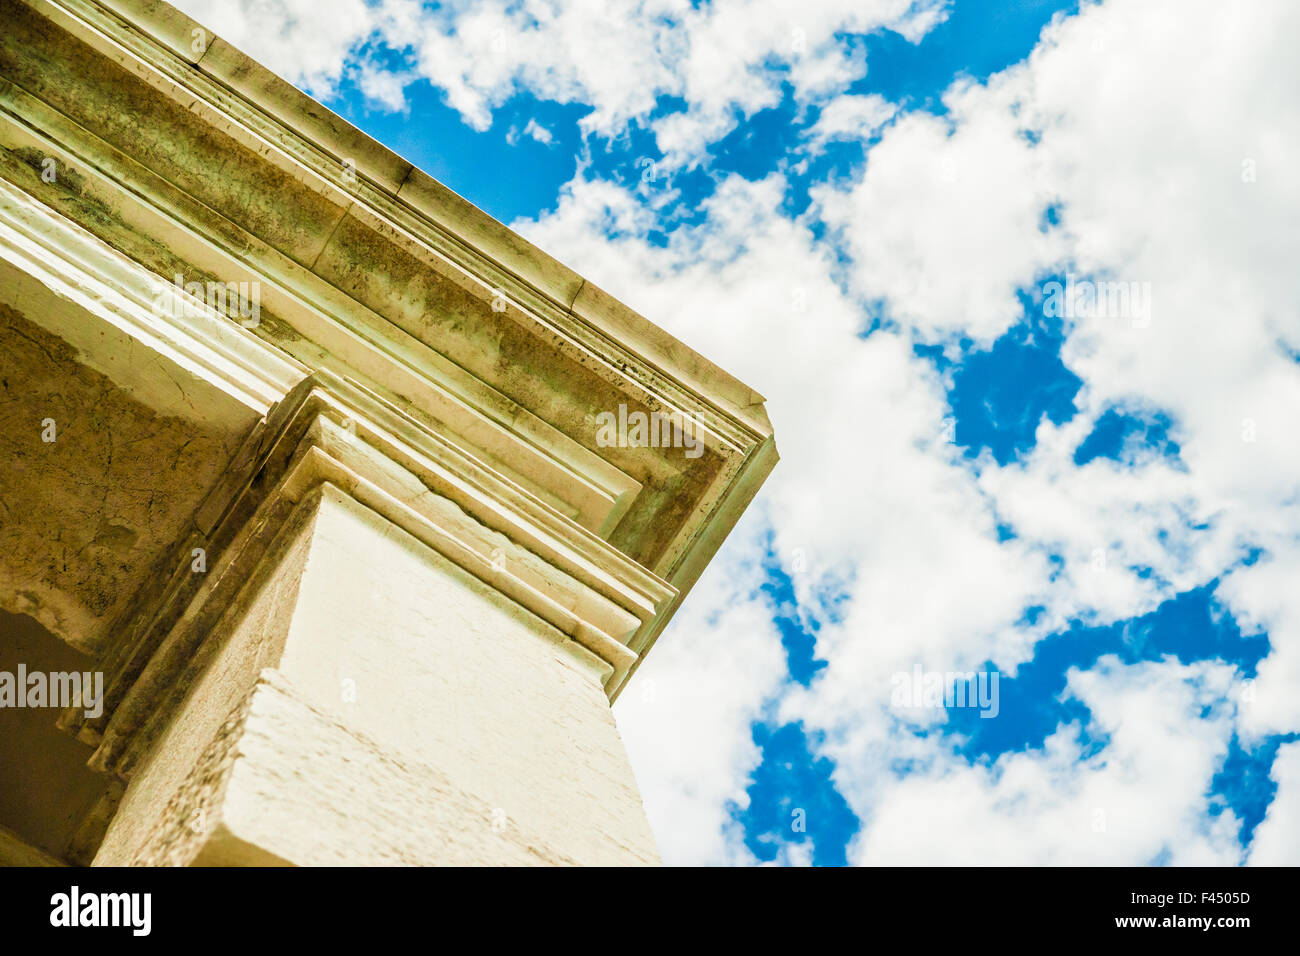 Classical architectural detail - Stock Image